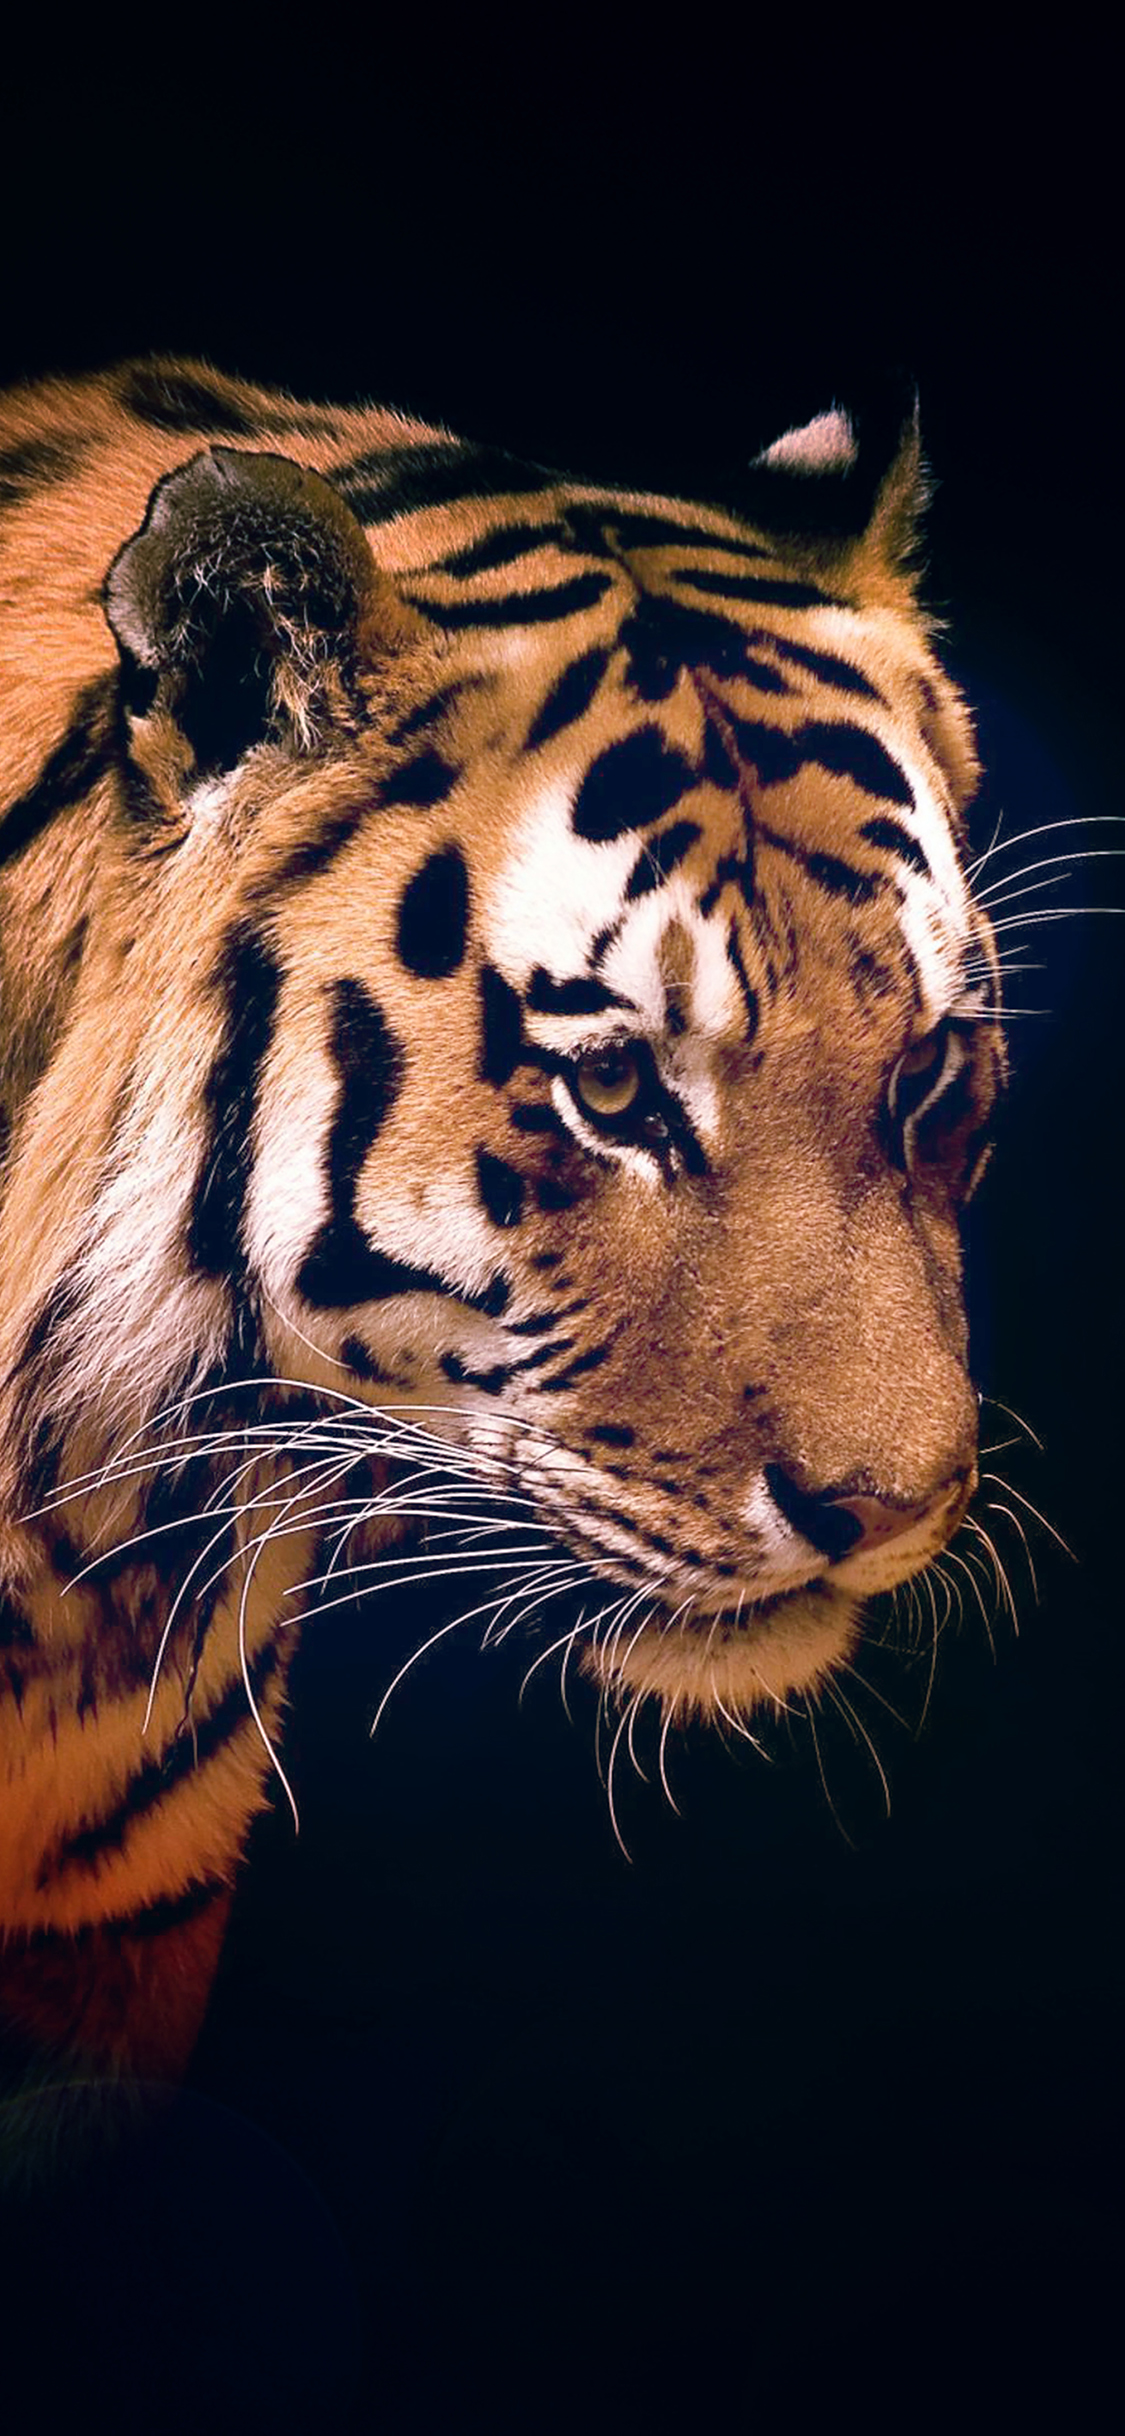 Animal Desktop Wallpaper Mm82 Tiger Dark Animal Love Nature Wallpaper